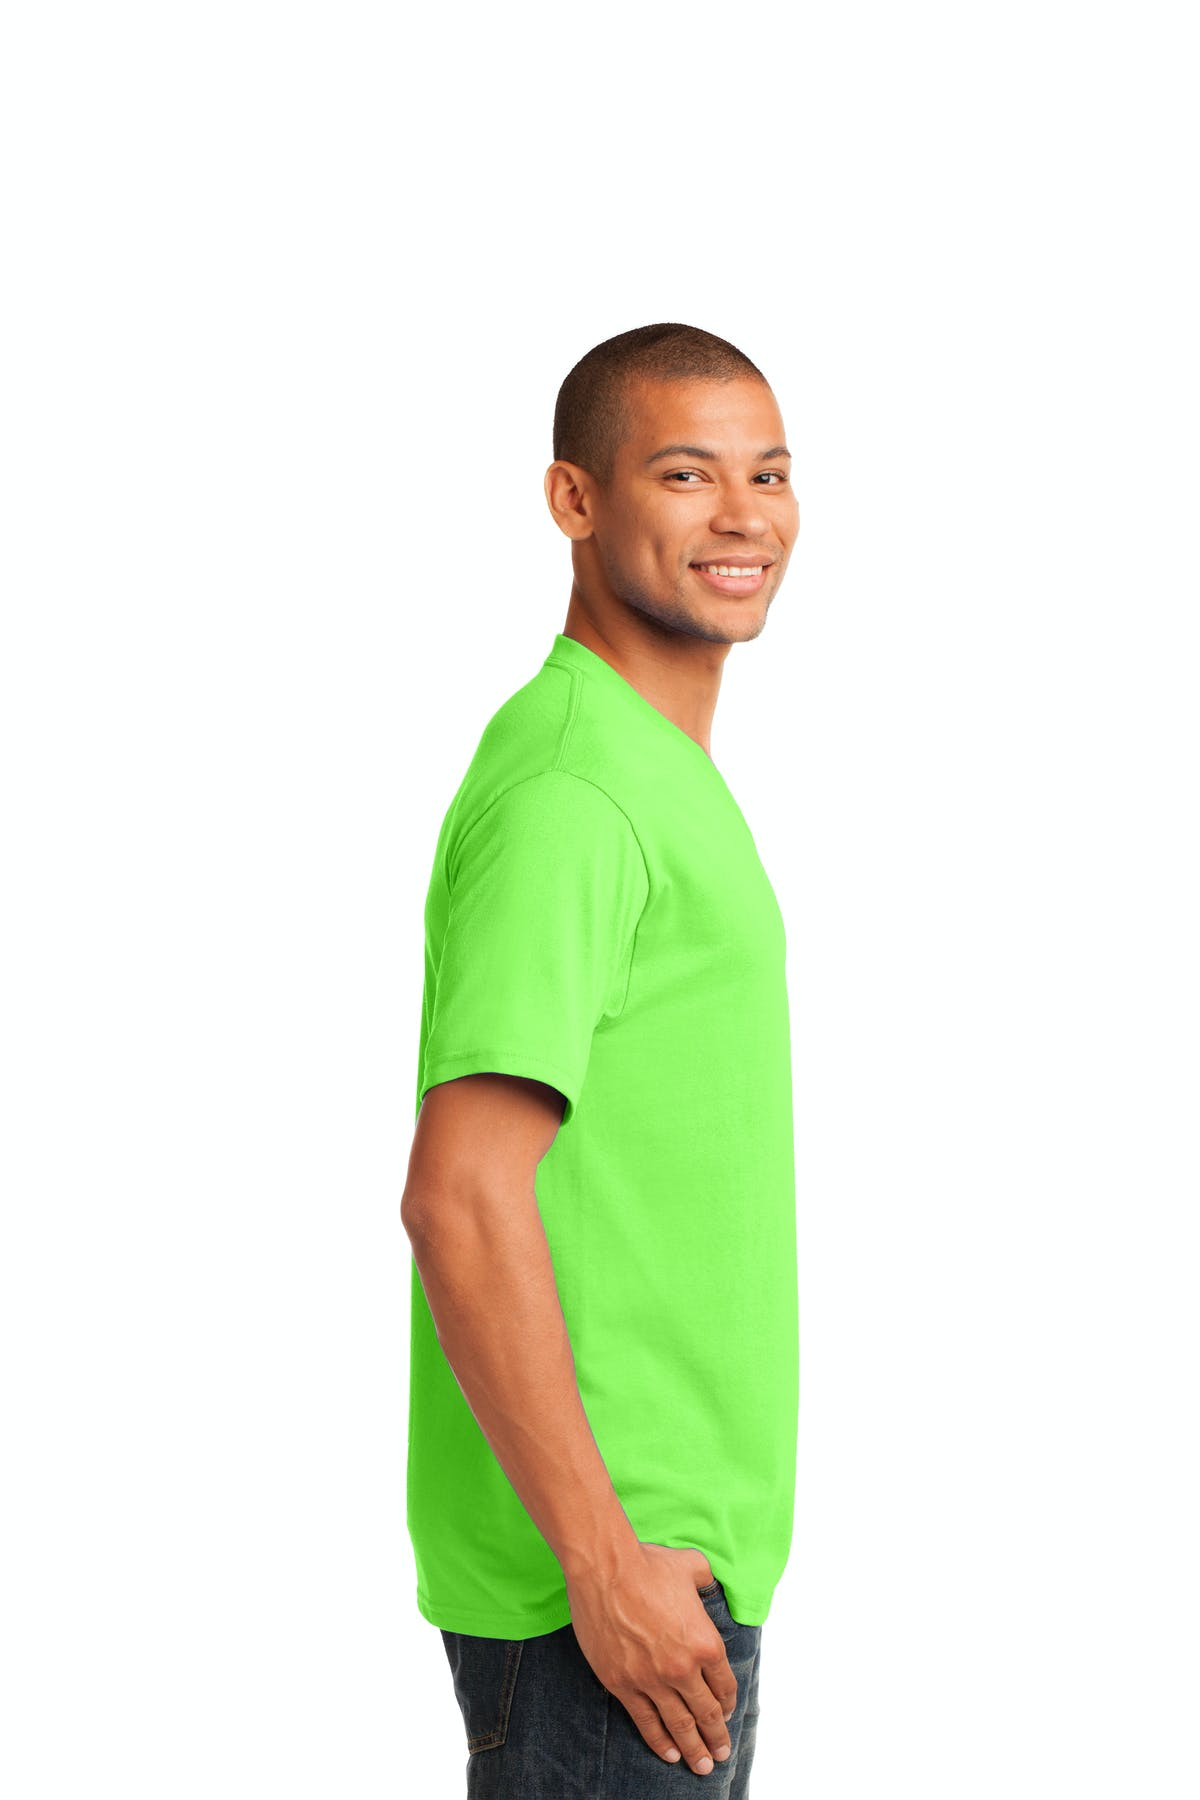 Port & Company® Core Cotton V-Neck Tee - sold by PRINT CITY GRAPHICS, INC